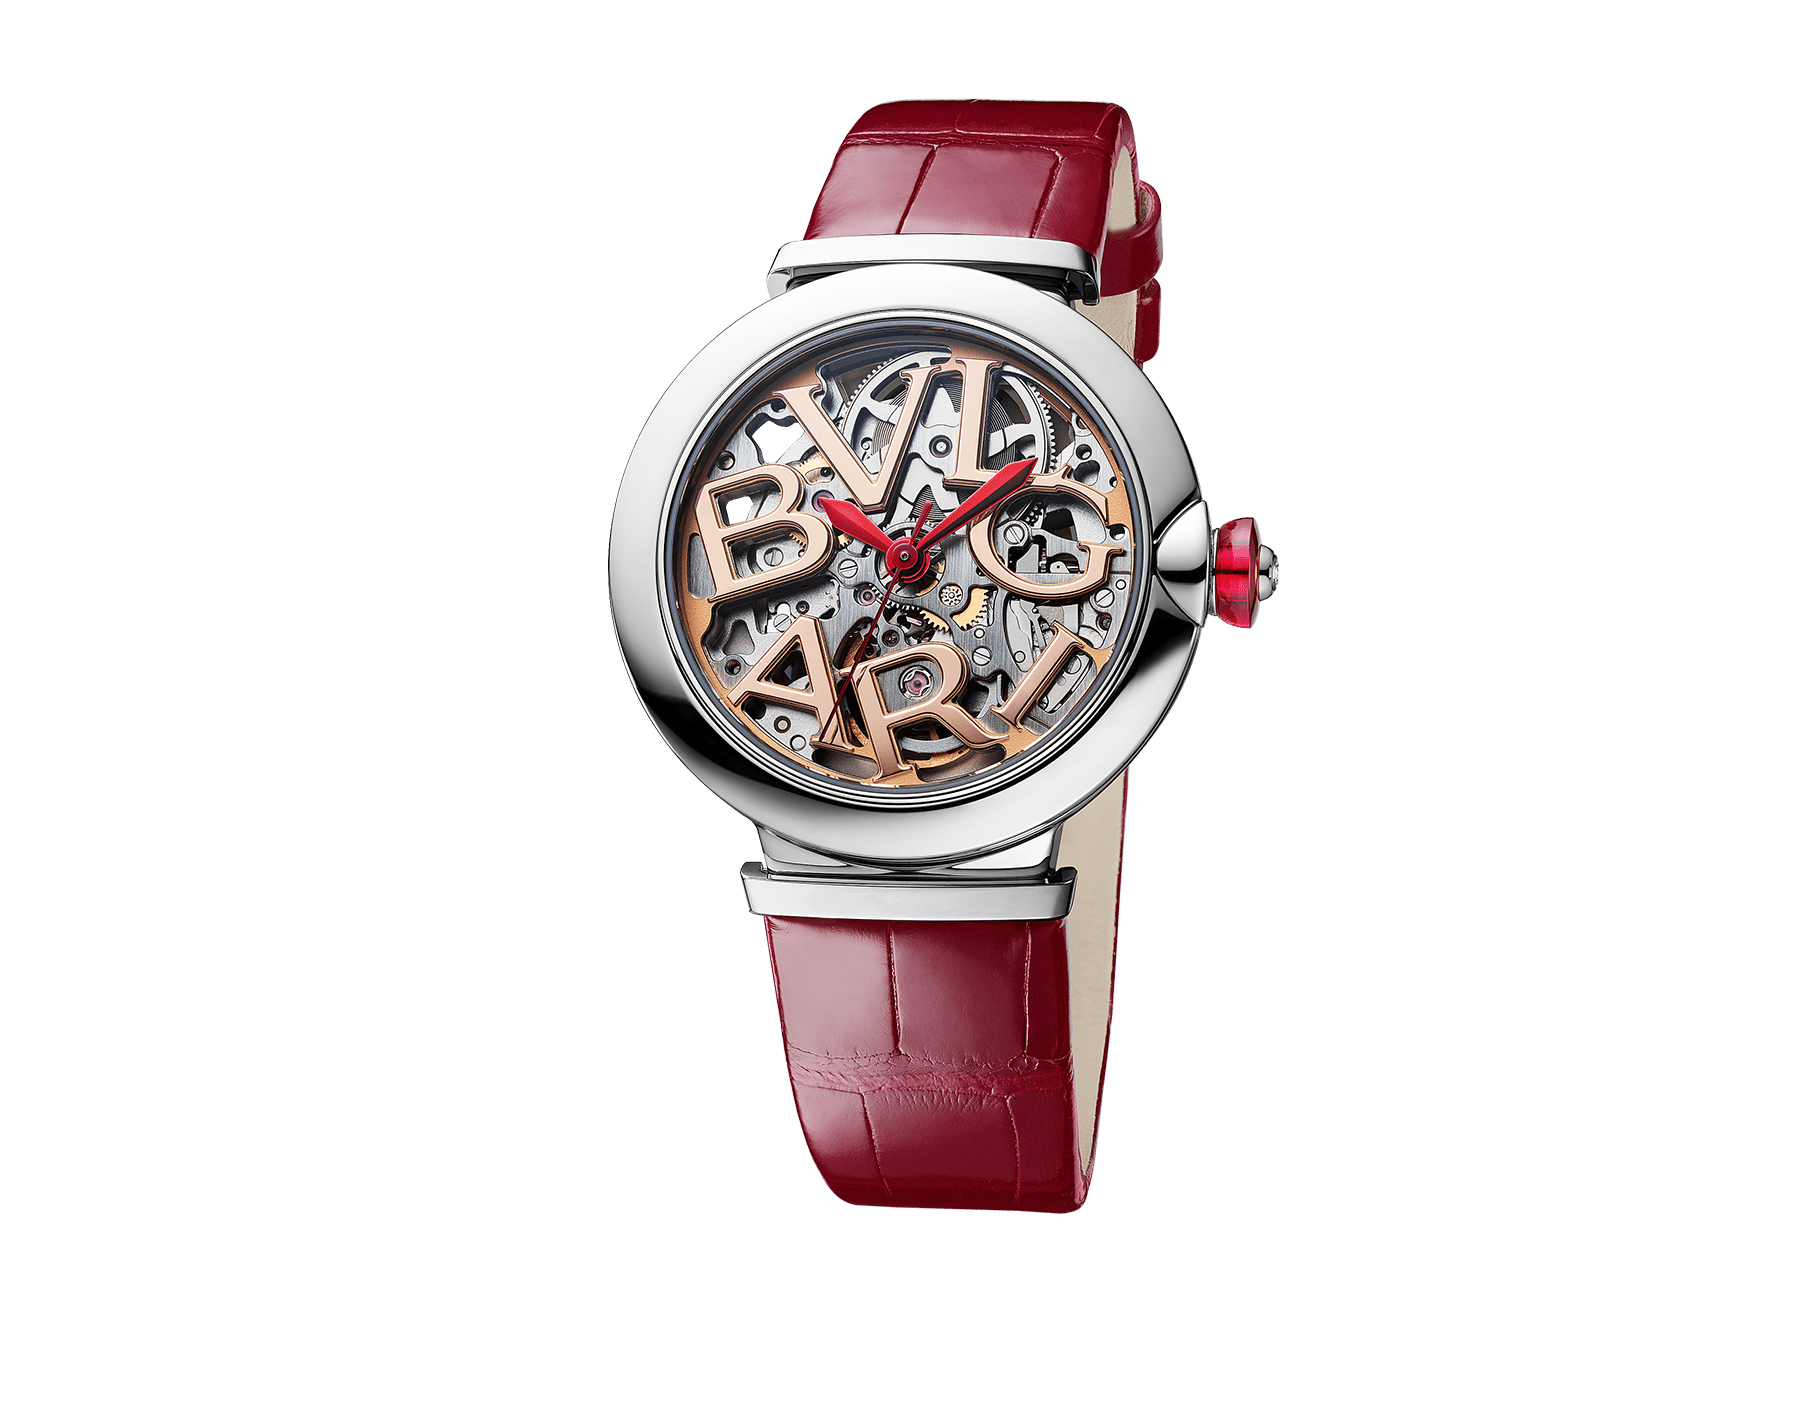 LVCEA Skeleton watch with mechanical manufacture movement, automatic winding, stainless steel case, openwork BVLGARI logo dial and red alligator bracelet 102879 image 2